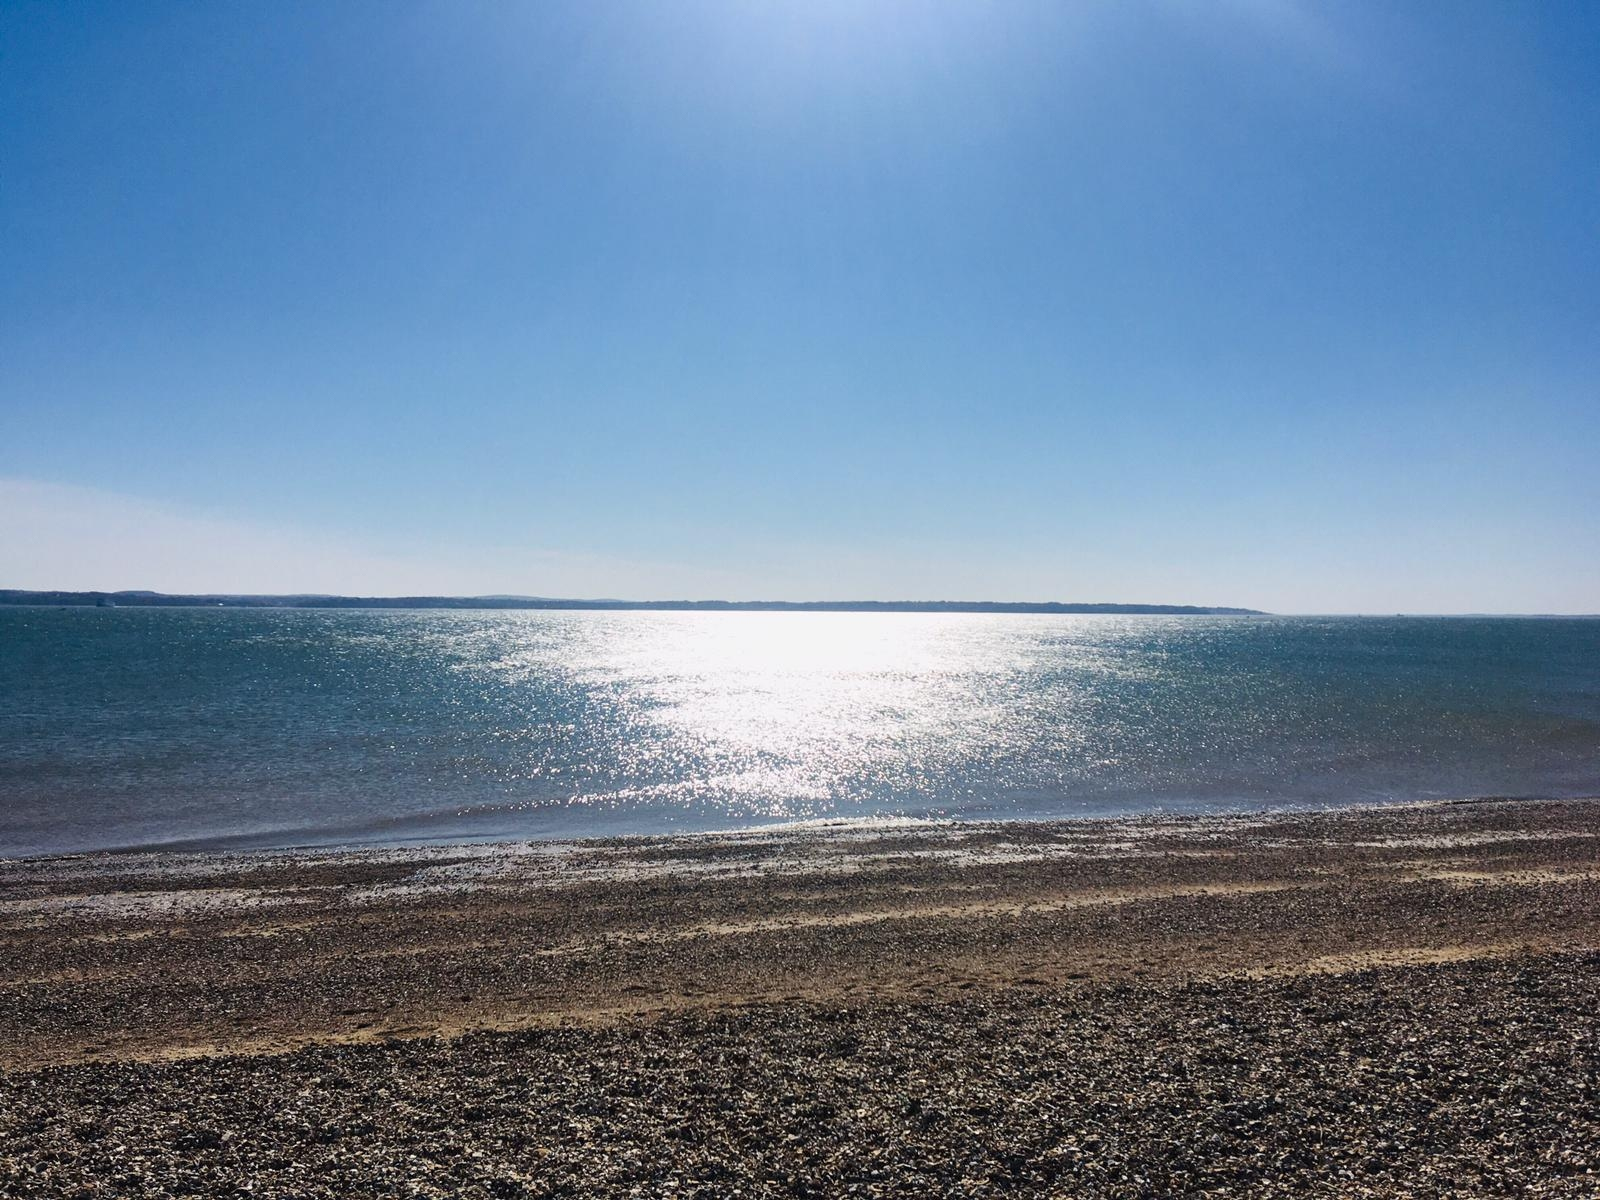 Sun reflecting on the Solent